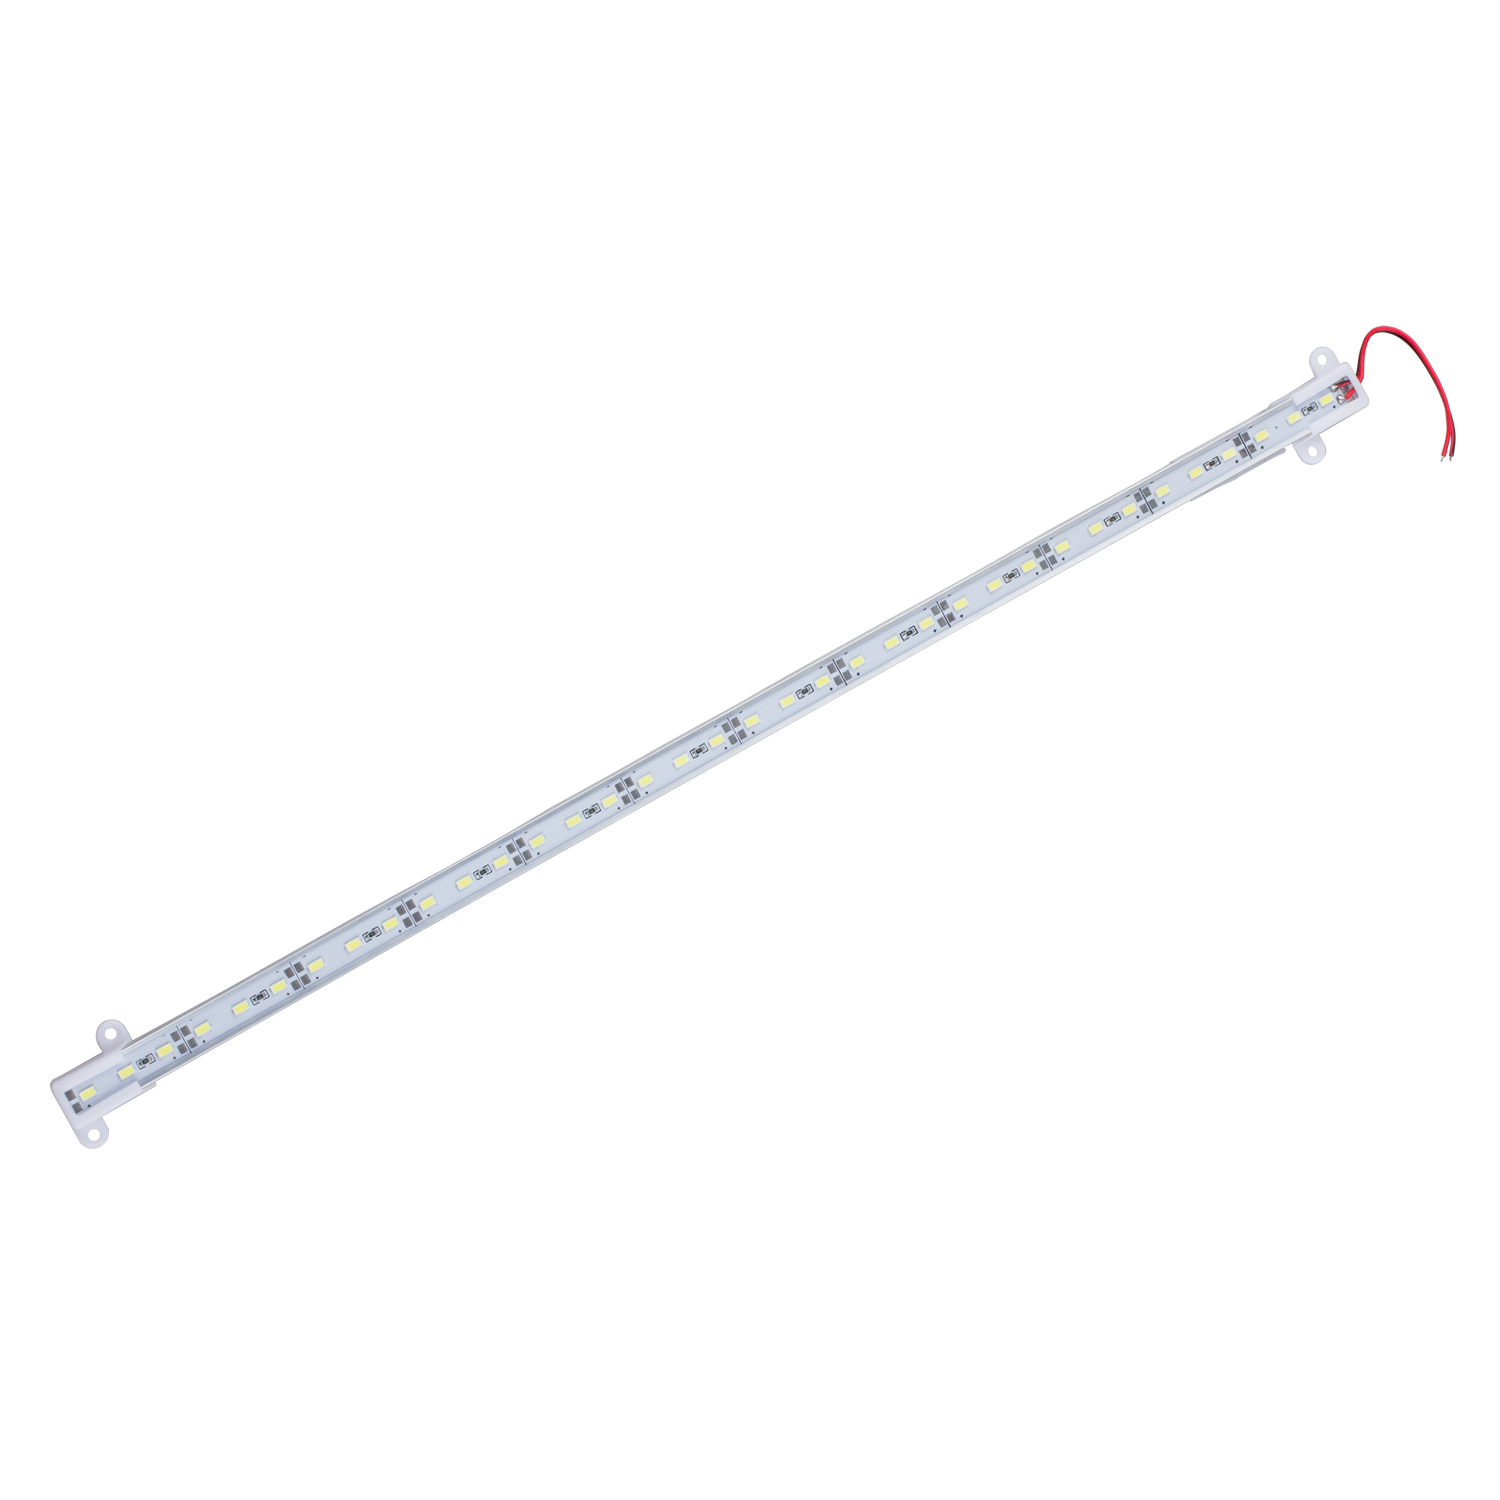 2pcs Dimmable Under Cabinet Strip Lighting7020 7030 9w 50cm Touch Switch Control Kitchen Led Light B Dc12v Rigid Strip Light 1pcs 50cm Kitchen Led Under Light Dc12v 36 Smd 5050 Led Hard Rigid